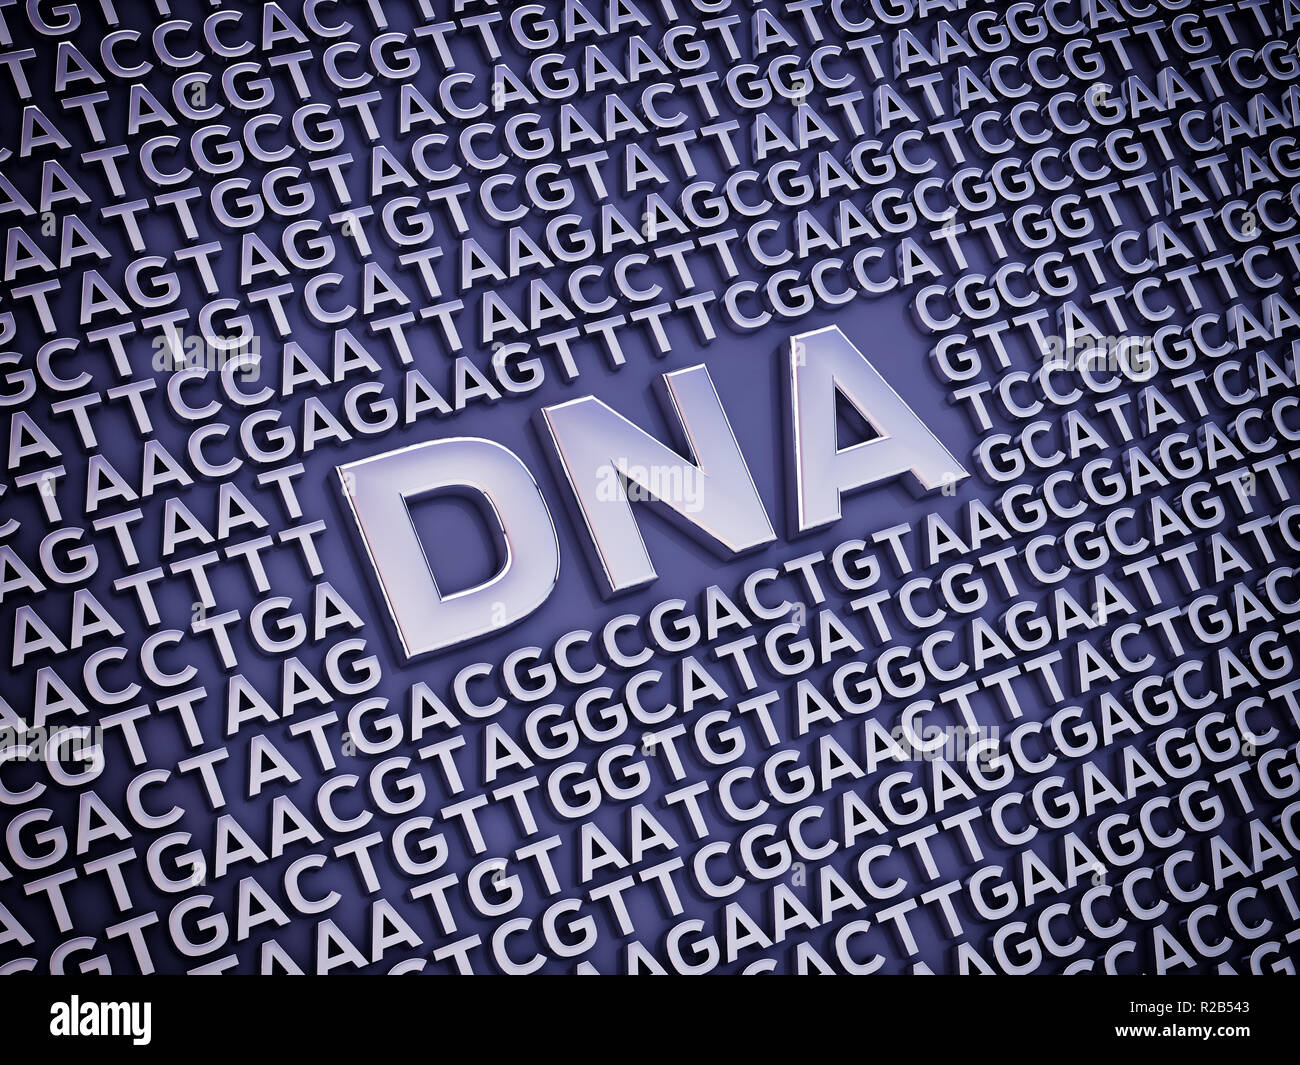 Nucleobases are the buidling blocks of DNA, Genetic code - Stock Image